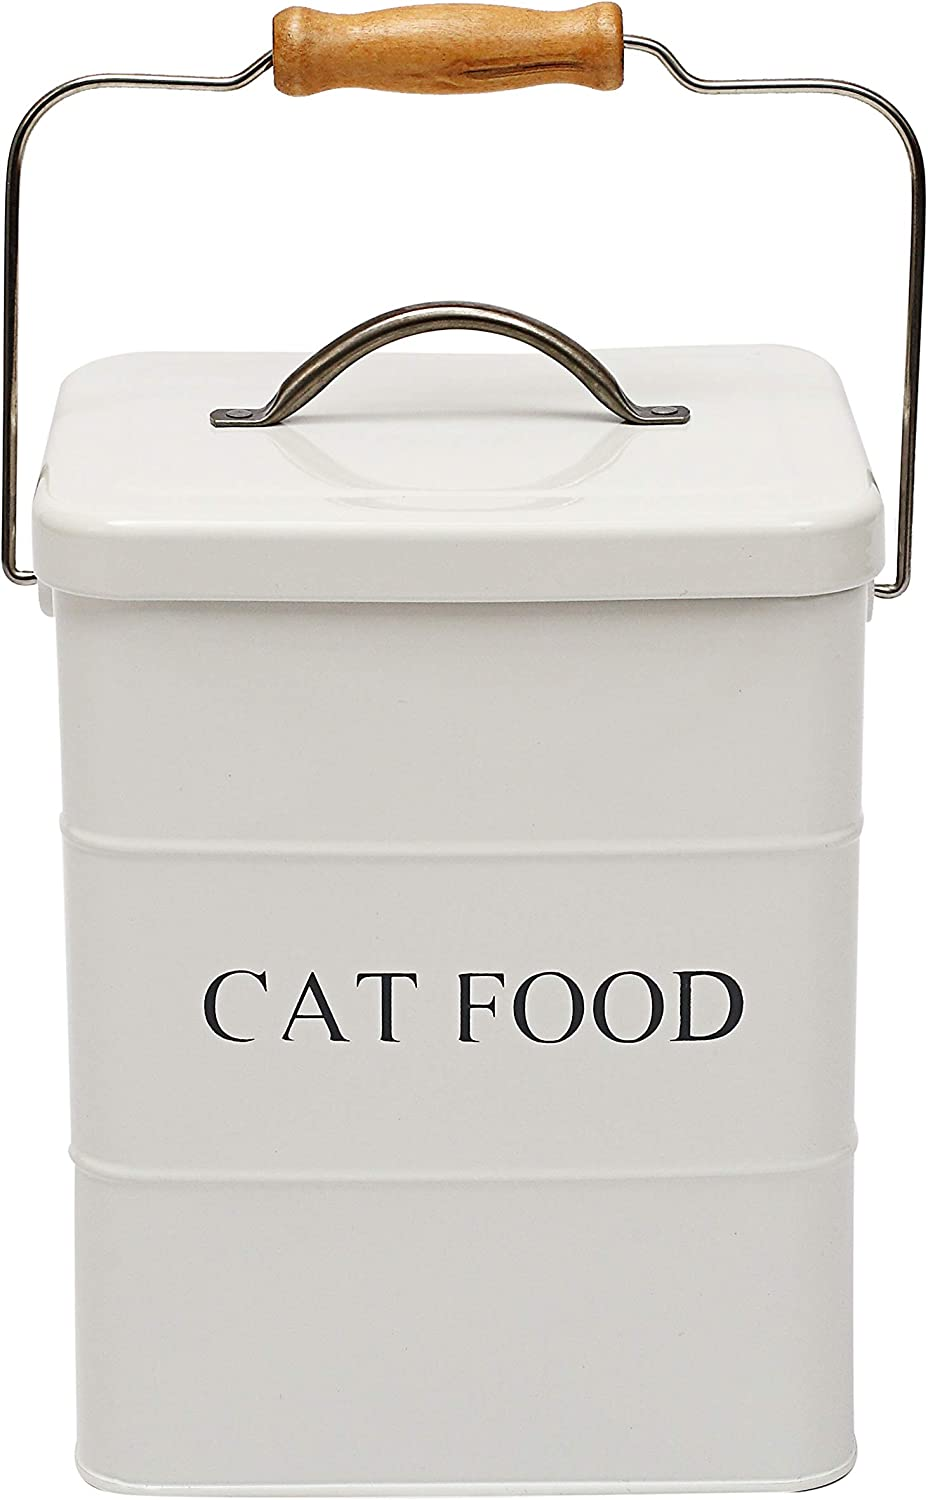 Morezi Cat Treat and Food Storage tin with lid and Scoop Included - White Powder - Carbon Steel - pet Food bin - Storage Canister tins - Cat Food - White